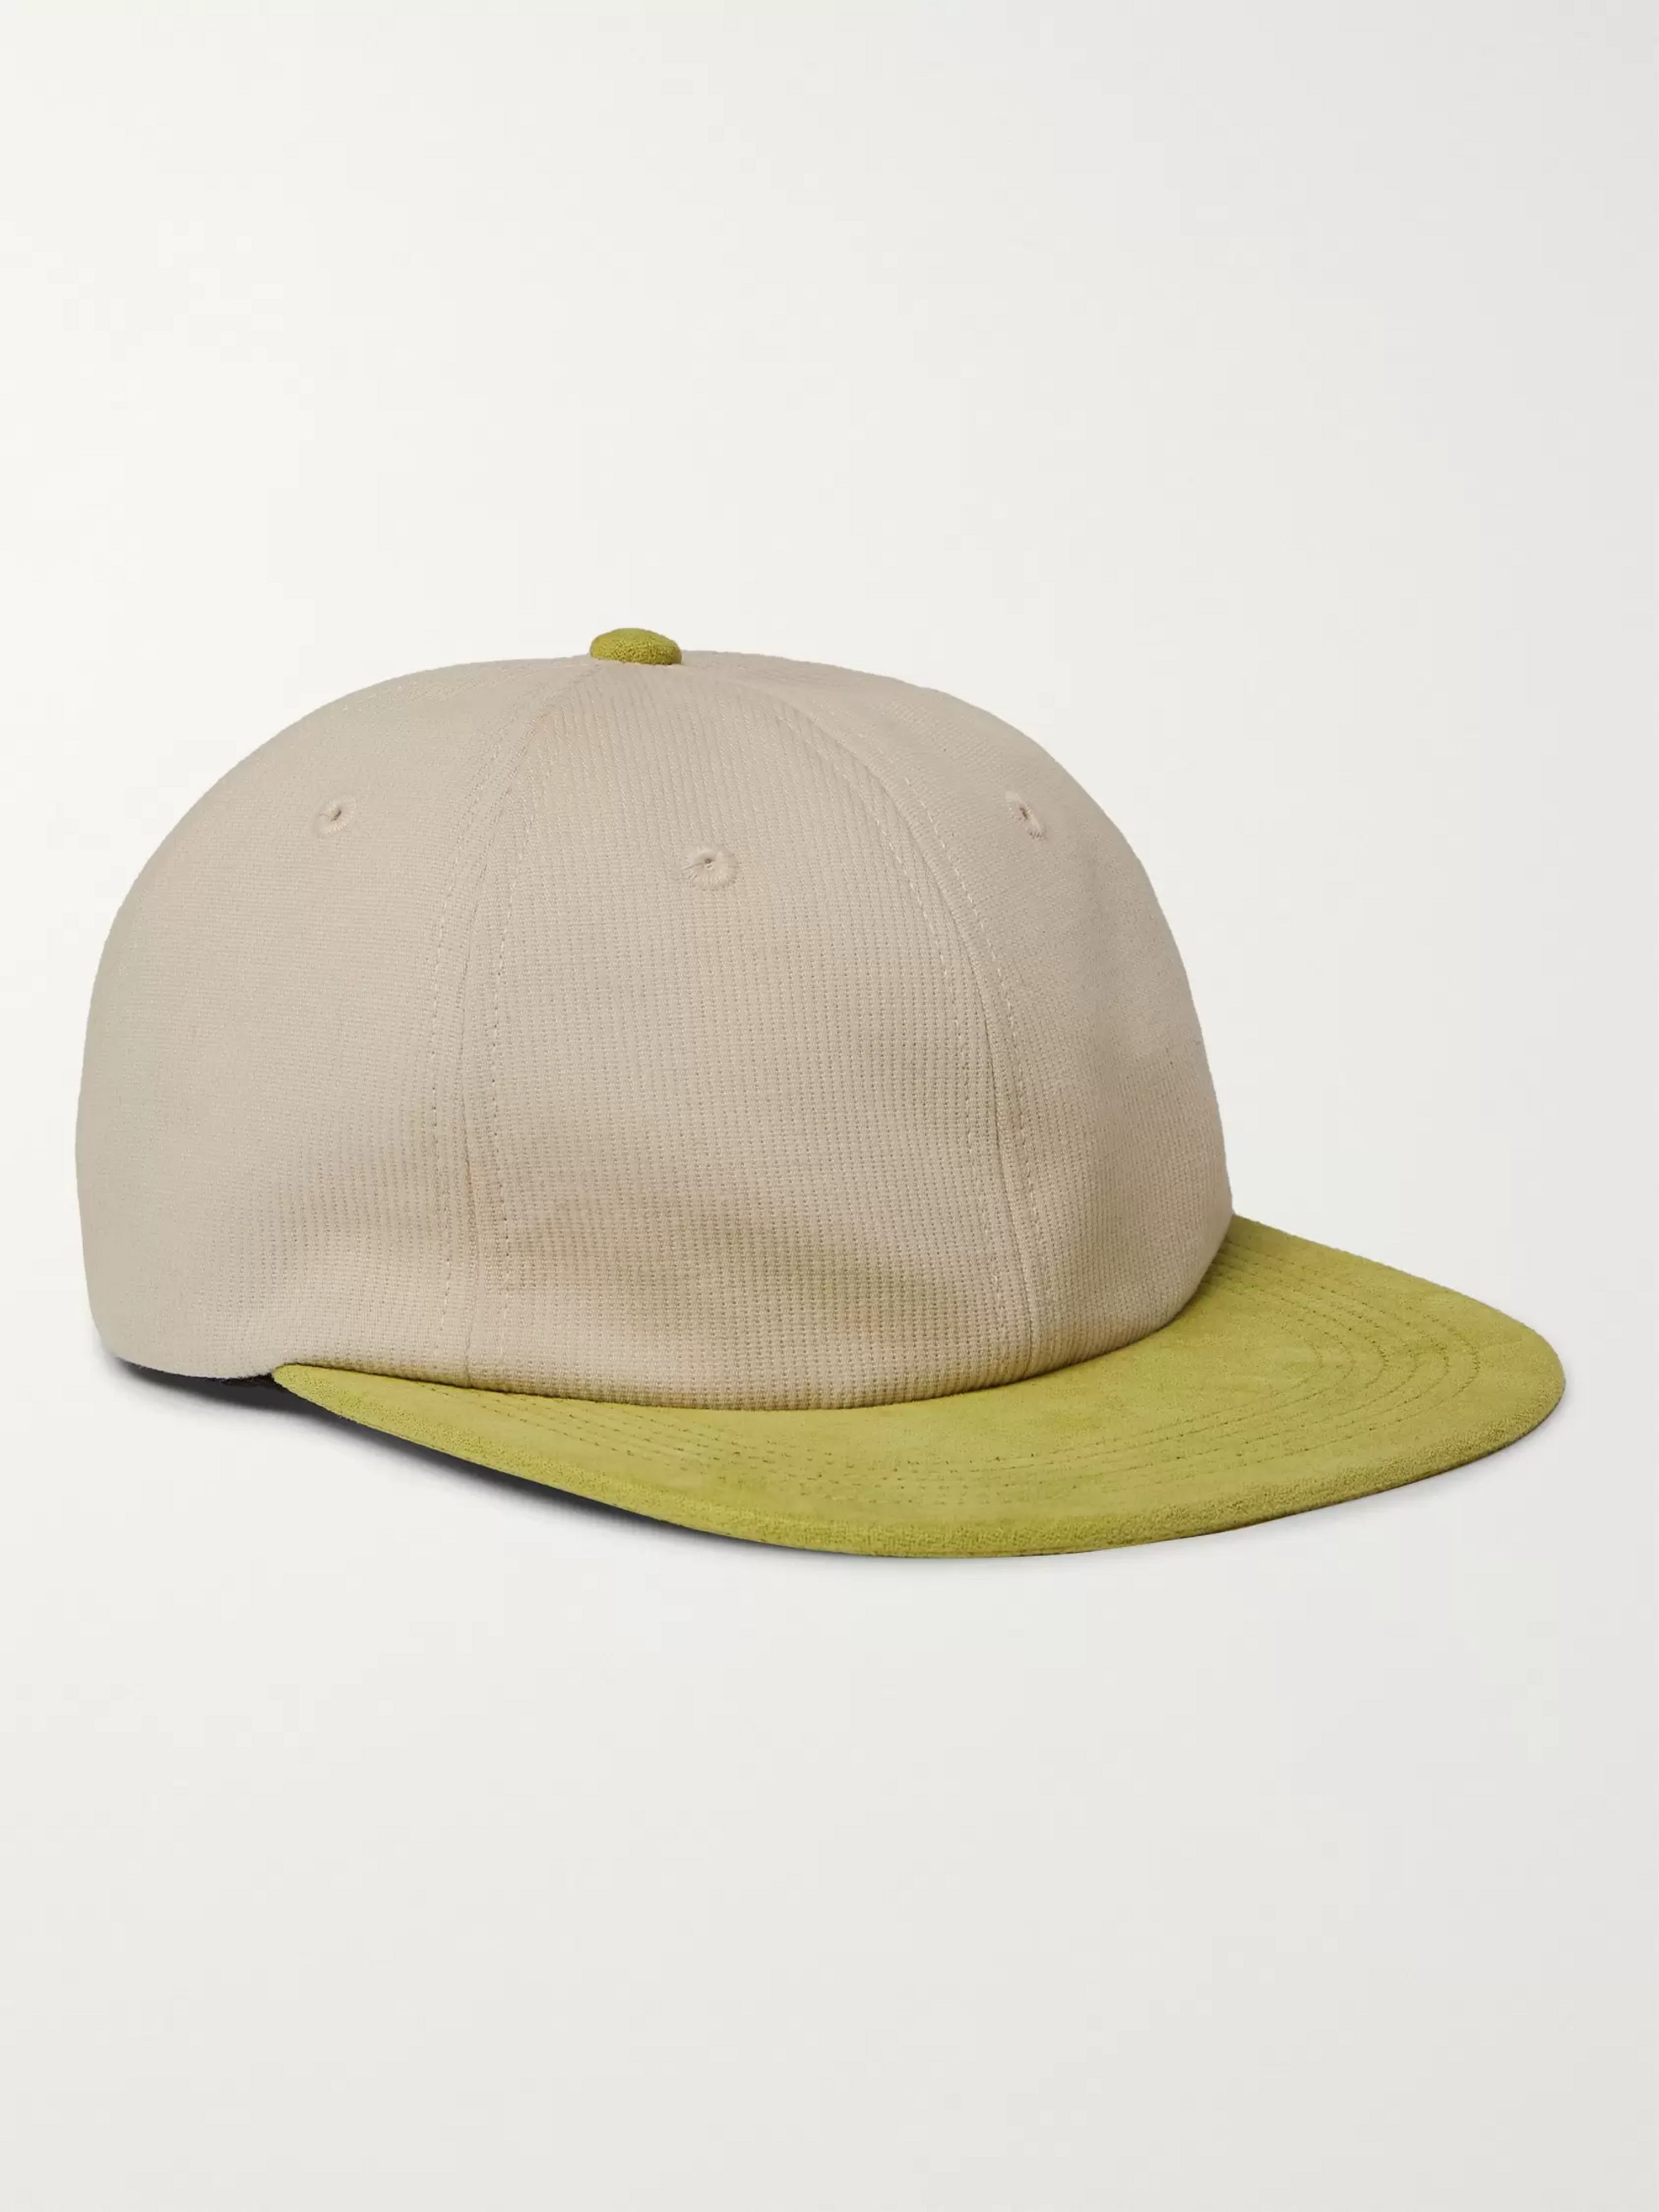 Pop Trading Company Logo-Embroidered Cotton and Suede Baseball Cap